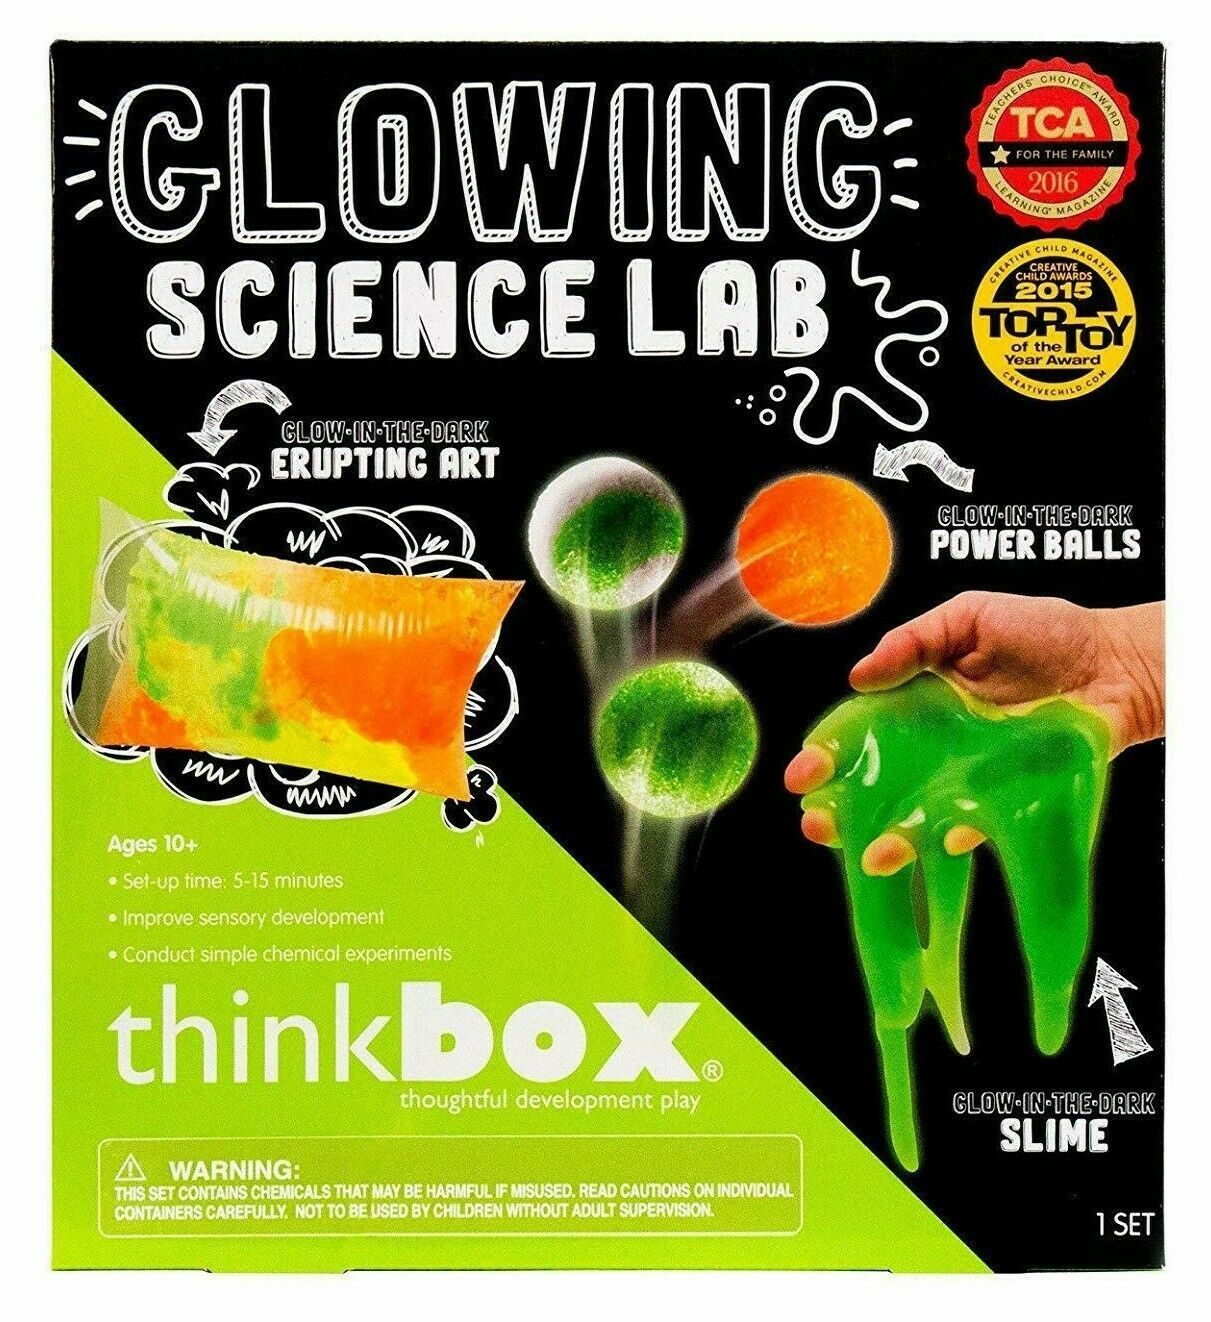 Think Box Glowing Science Lab Glow Dark Slime Power Balls Kids Craft Activity NW